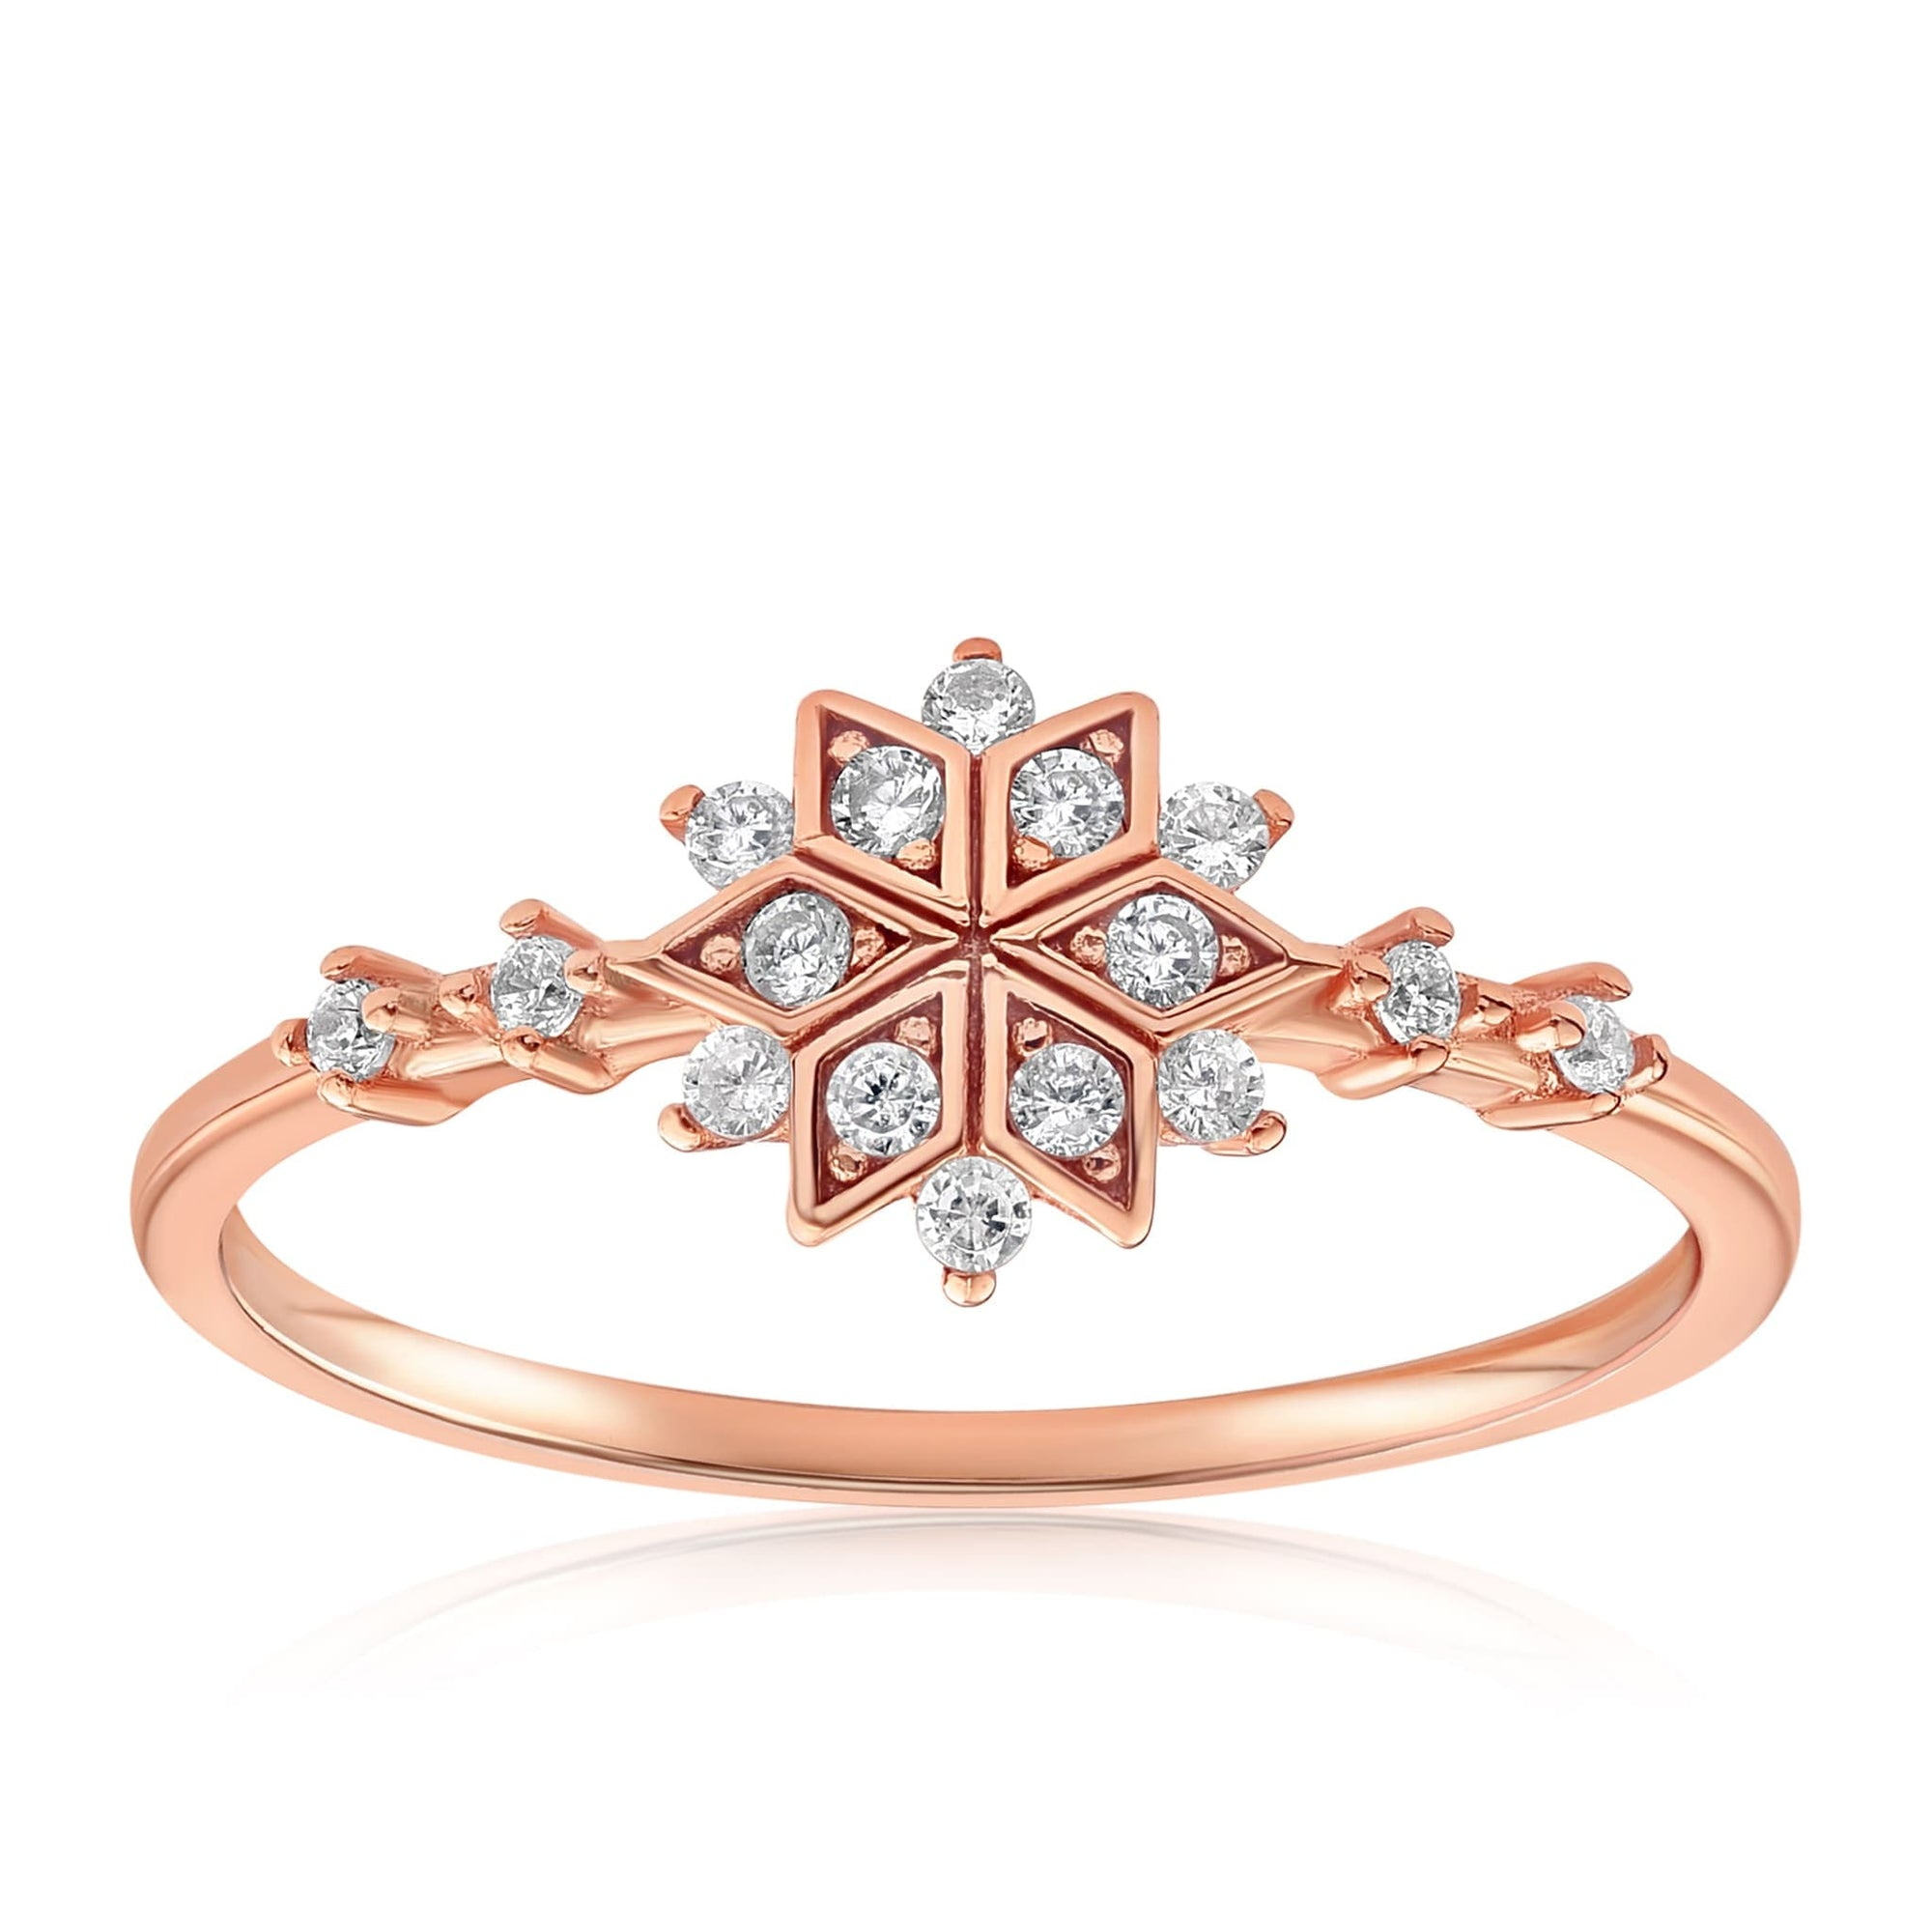 Sophia Snowflake Ring - Front View Facing Up - 18K Rose Gold Vermeil